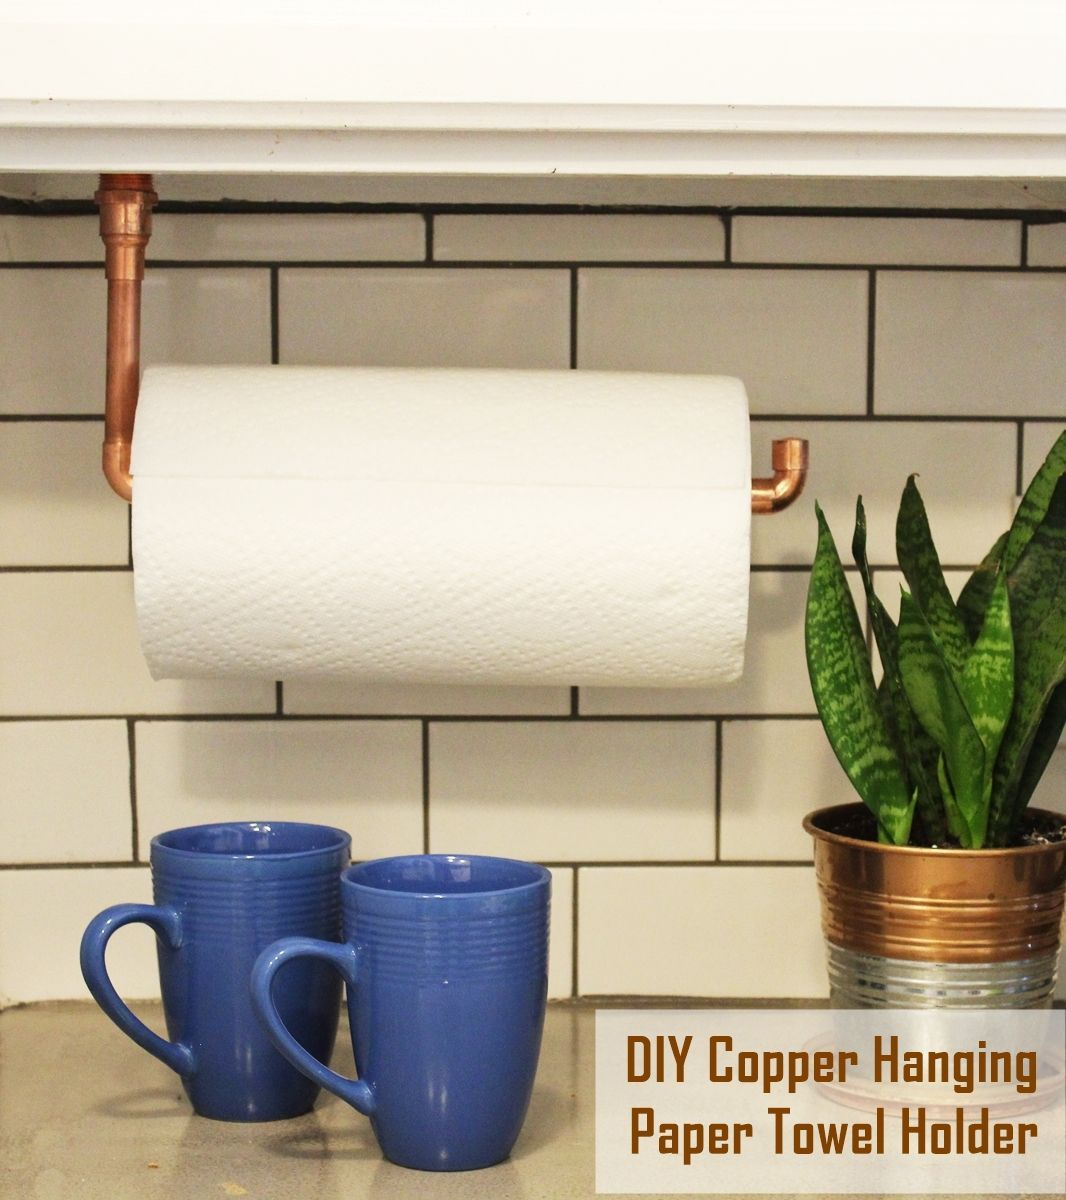 1568363283 744 diy copper pipe crafts that are fun and easy to do - DIY Copper Pipe Crafts That Are Fun And Easy To Do